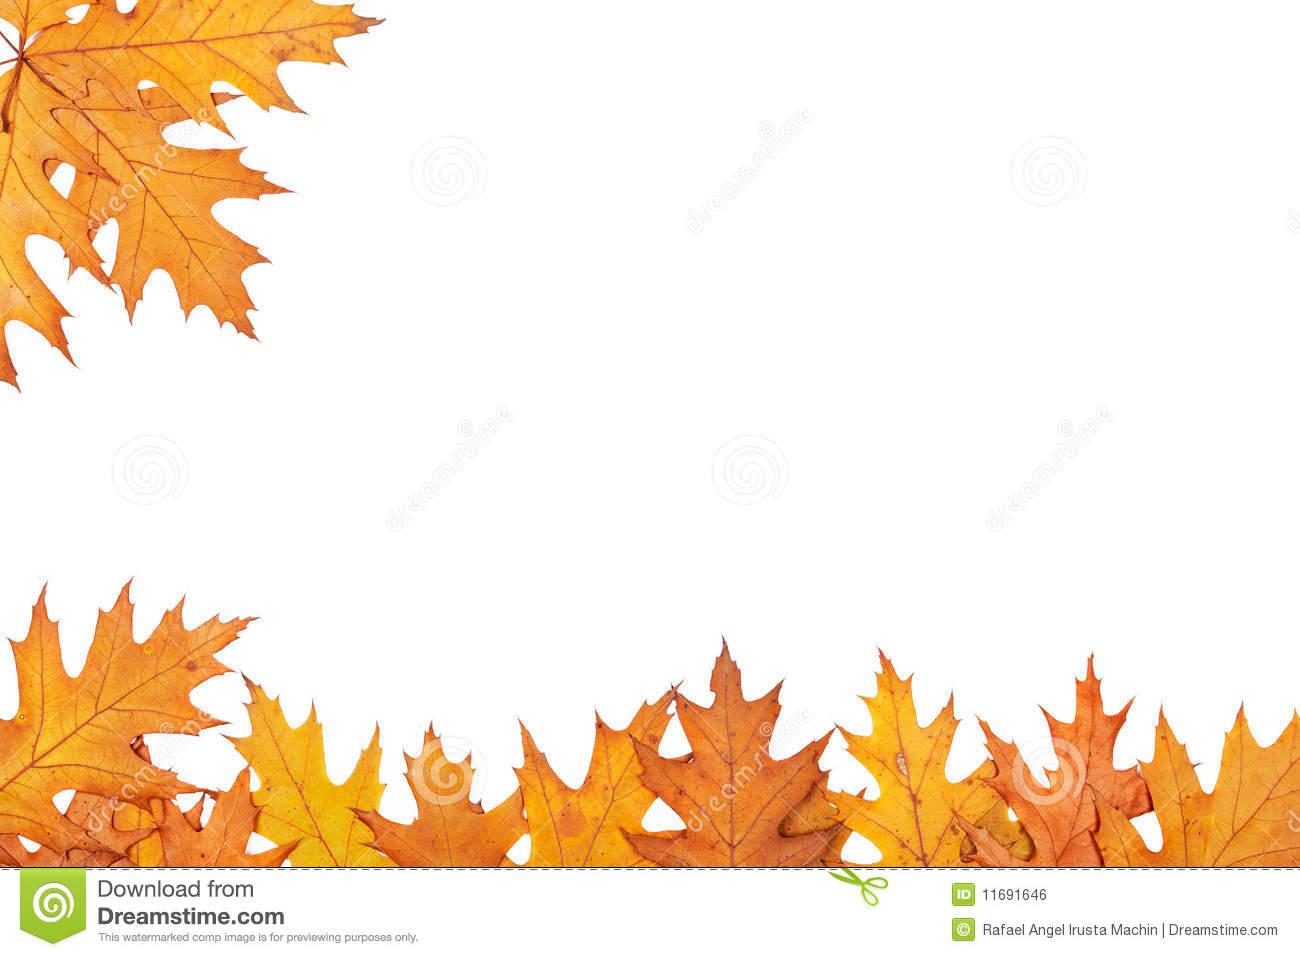 Best Images of Free Printable Fall Borders Clip Art - Autumn ...